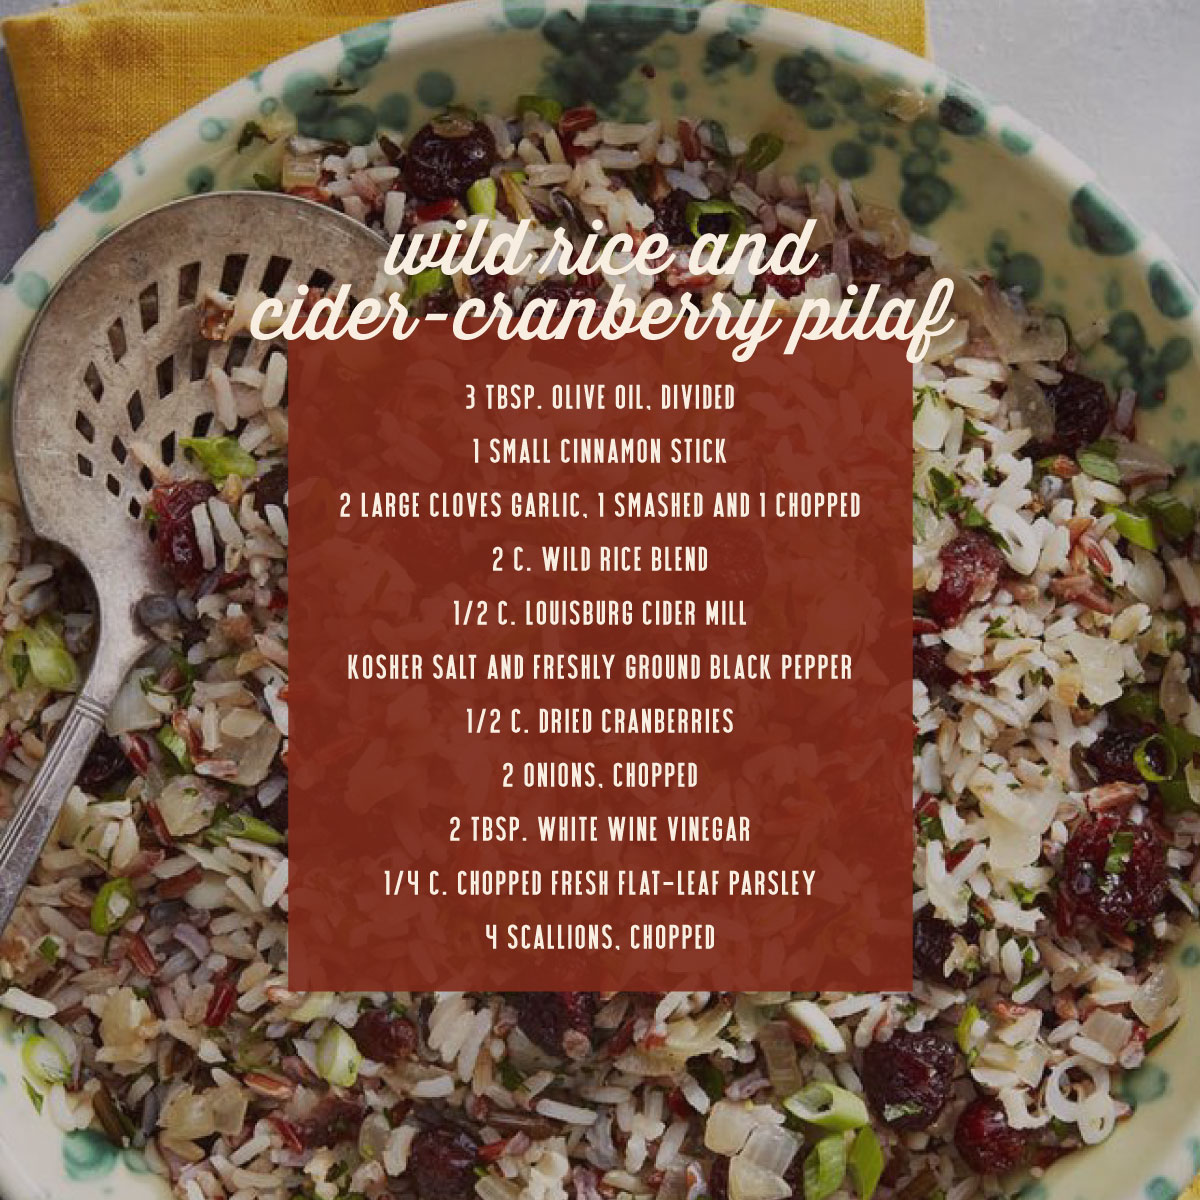 Wild rice and cider-cranberry pilaf